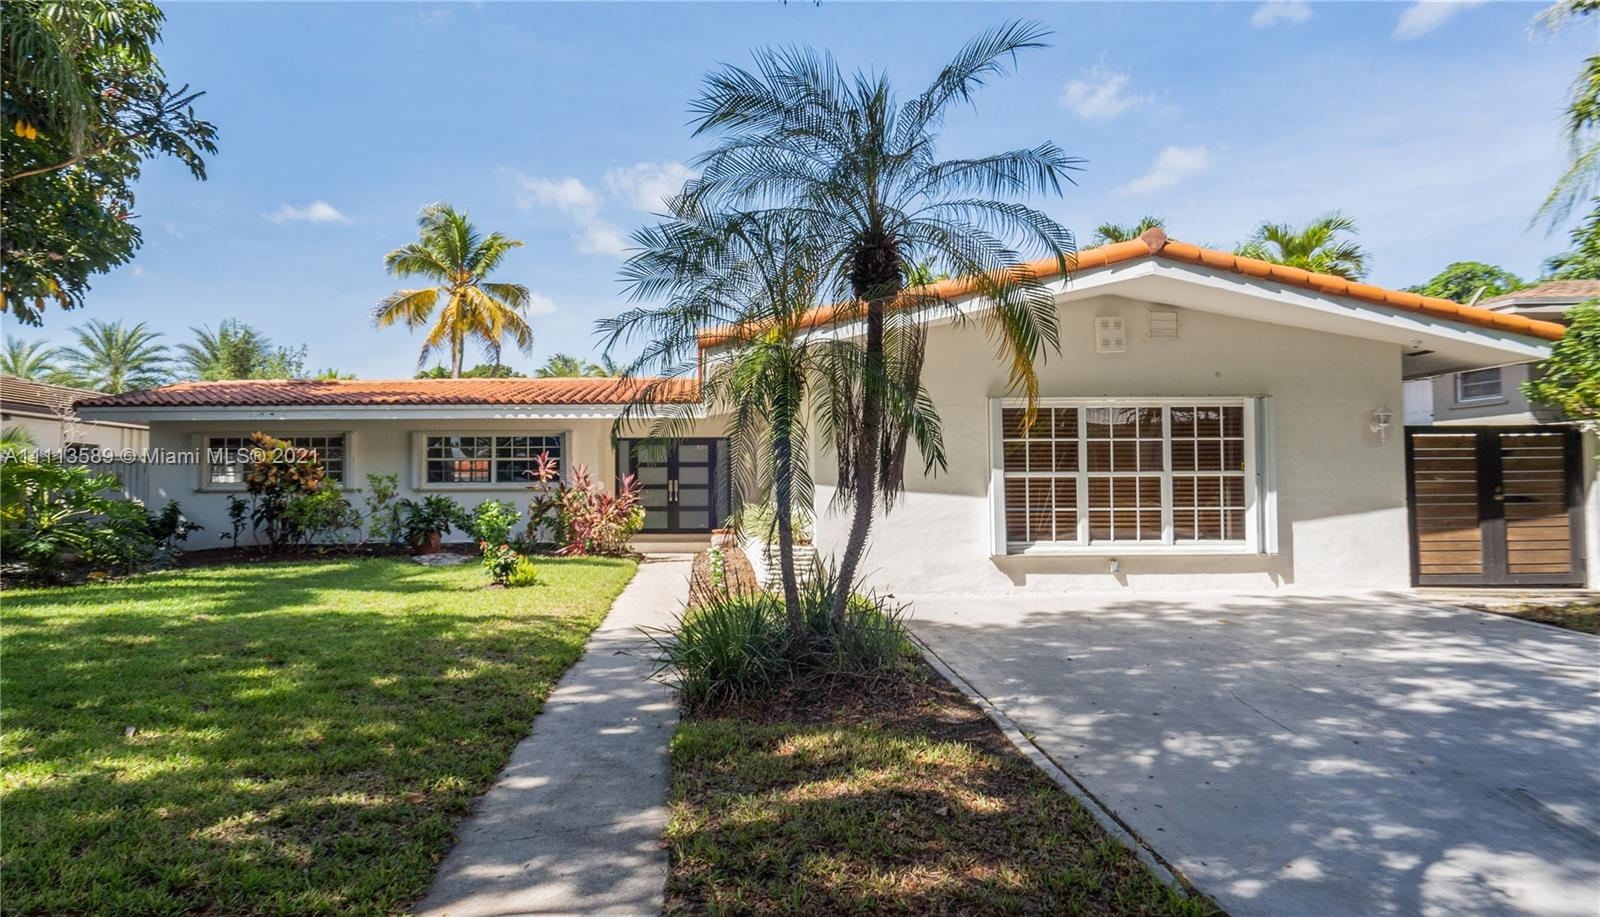 Single Family Home,For Rent,12710 Cyprus Rd, North Miami, Florida 33181,Brickell,realty,broker,condos near me